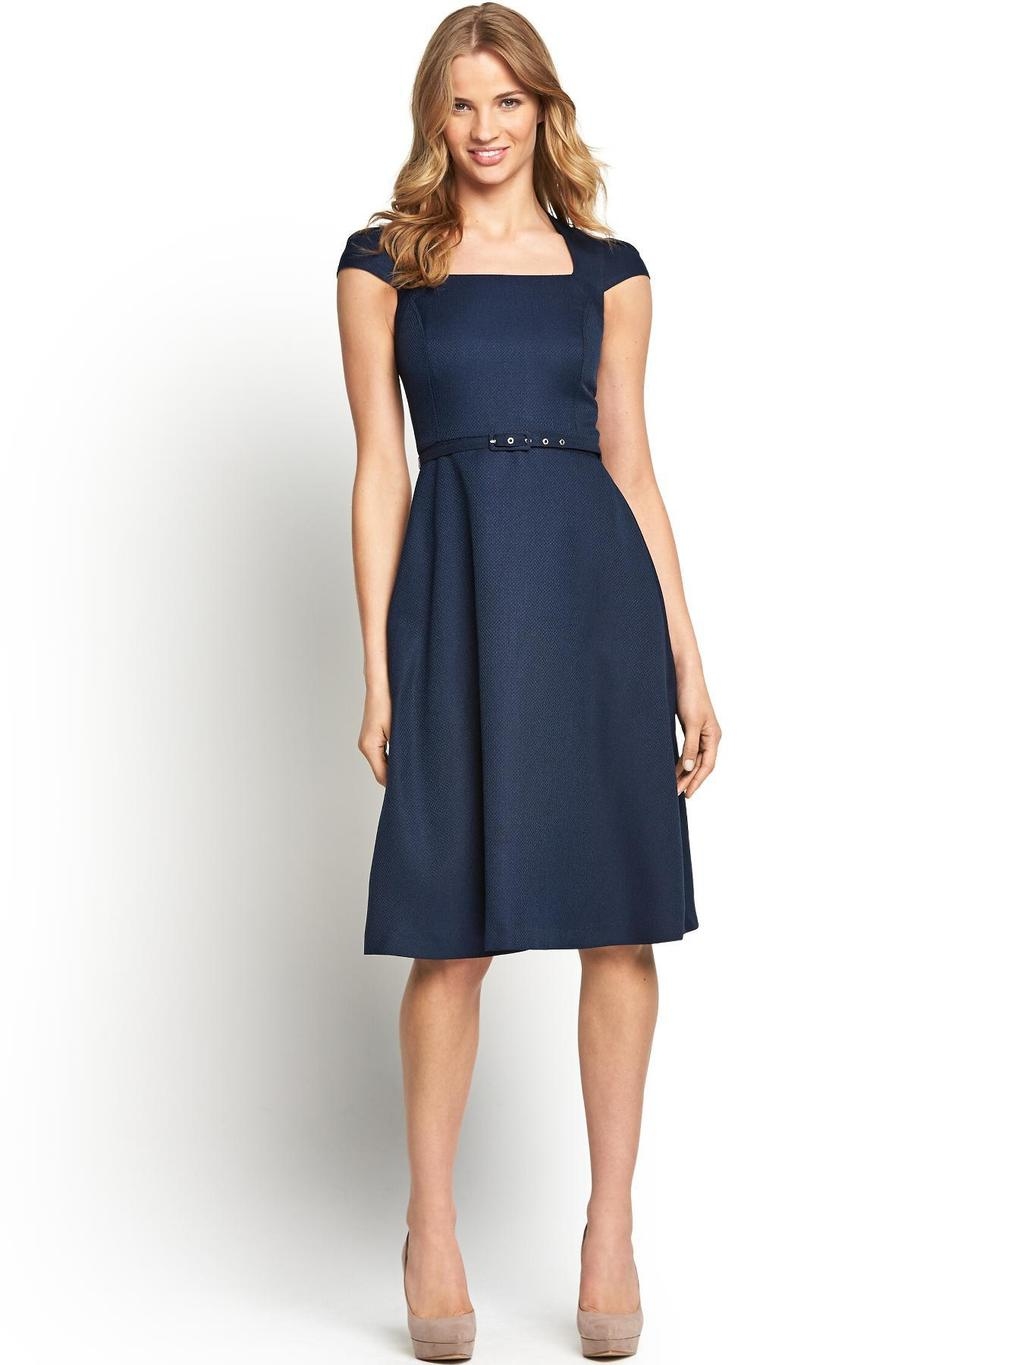 Petite Mix And Match Dress, Navy, Stone - sleeve style: capped; pattern: plain; waist detail: belted waist/tie at waist/drawstring; predominant colour: navy; occasions: evening, occasion; length: on the knee; fit: fitted at waist & bust; style: fit & flare; fibres: polyester/polyamide - 100%; hip detail: subtle/flattering hip detail; sleeve length: short sleeve; neckline: low square neck; pattern type: fabric; texture group: other - light to midweight; season: s/s 2014